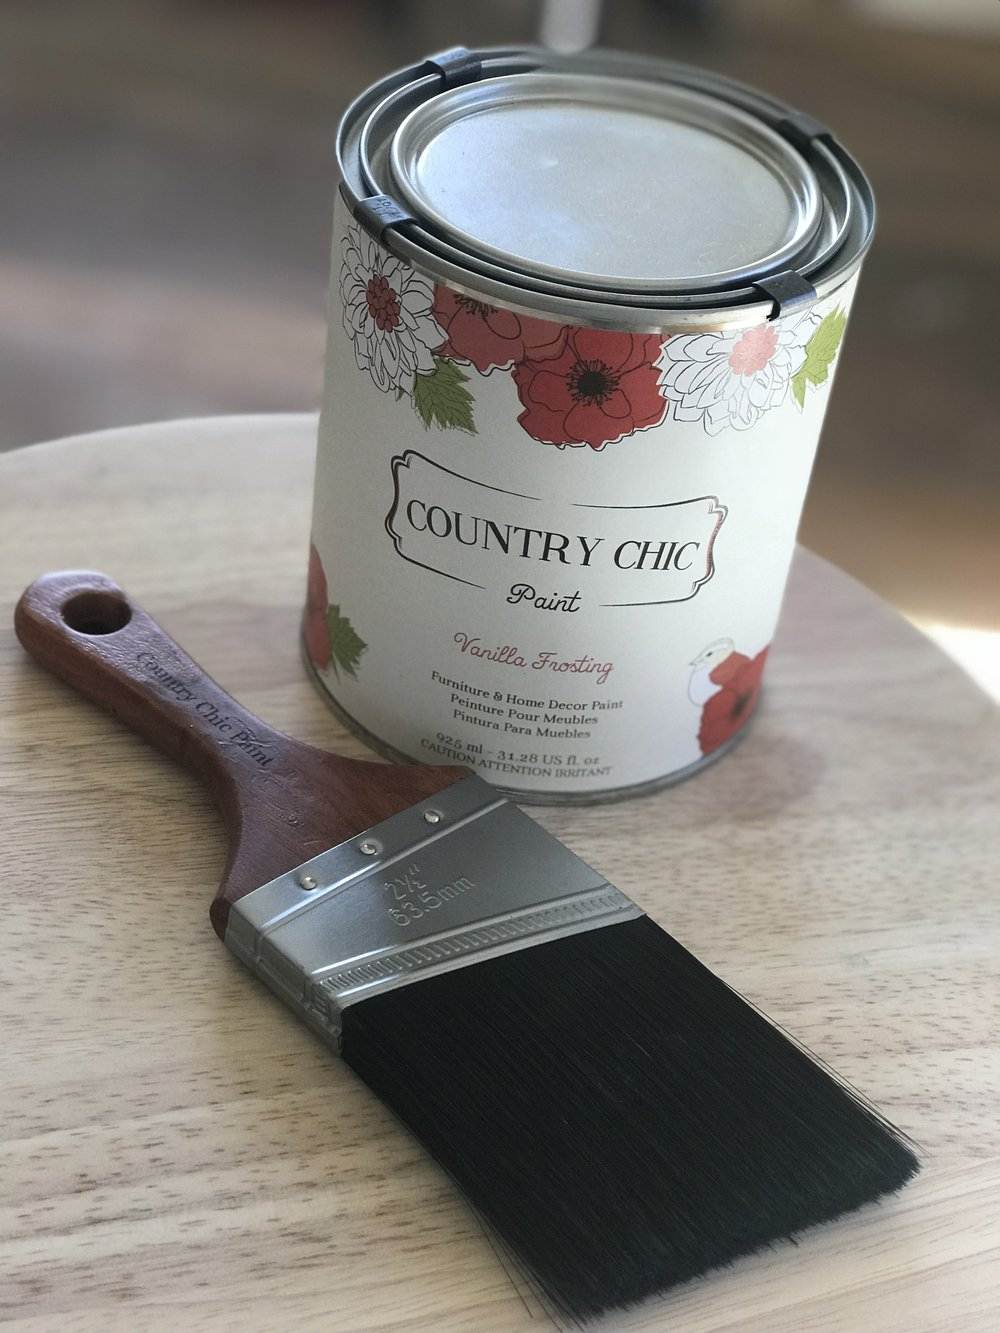 Vanilla Frosting Country Chic Paint